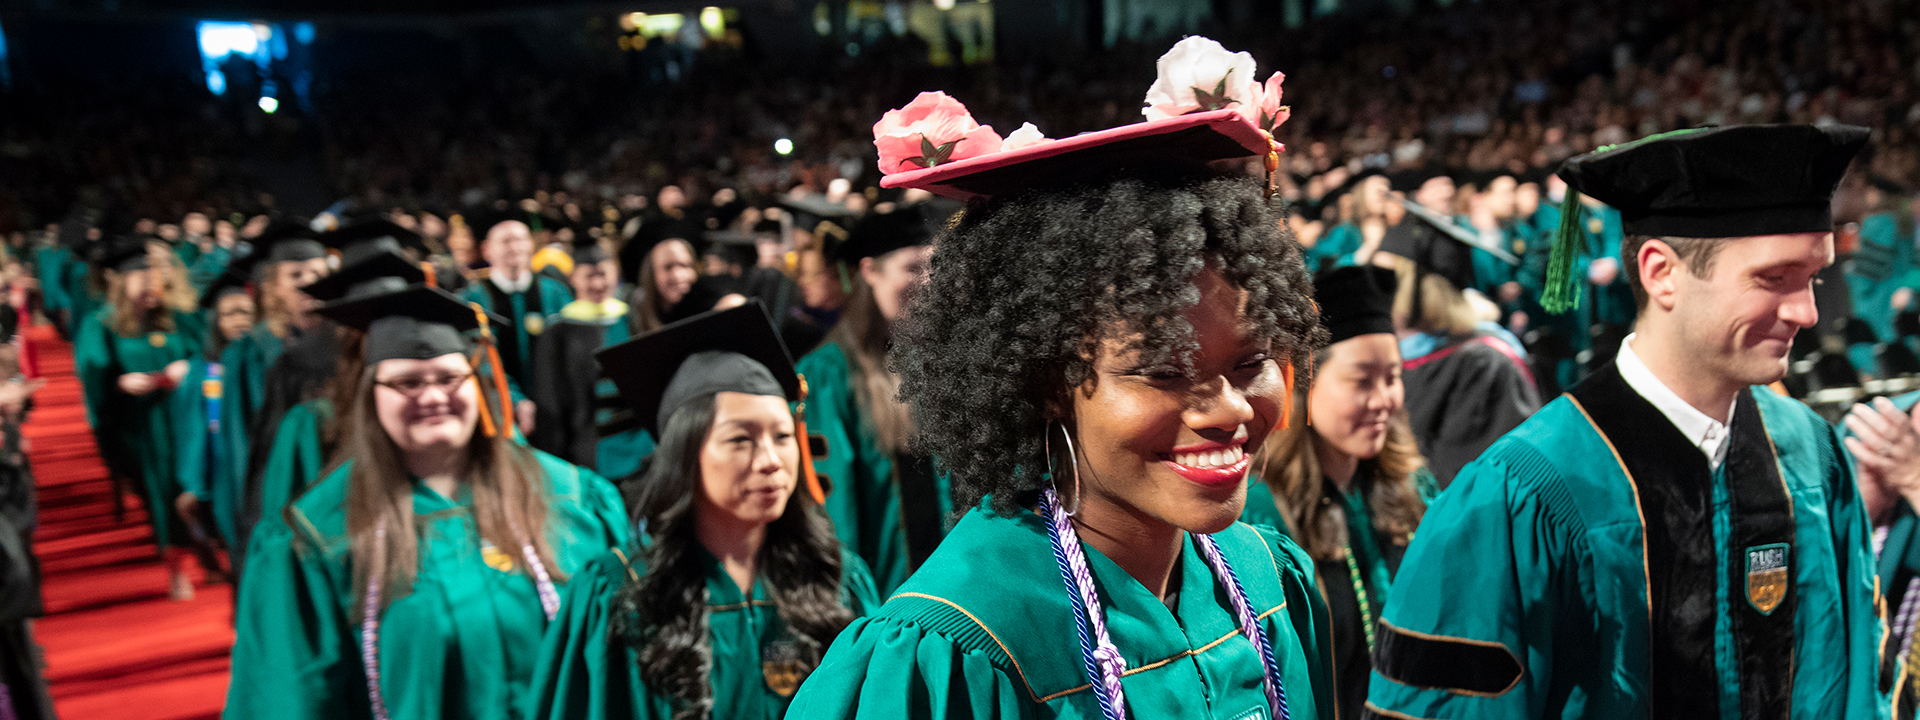 Rush students walking down the aisle at commencement